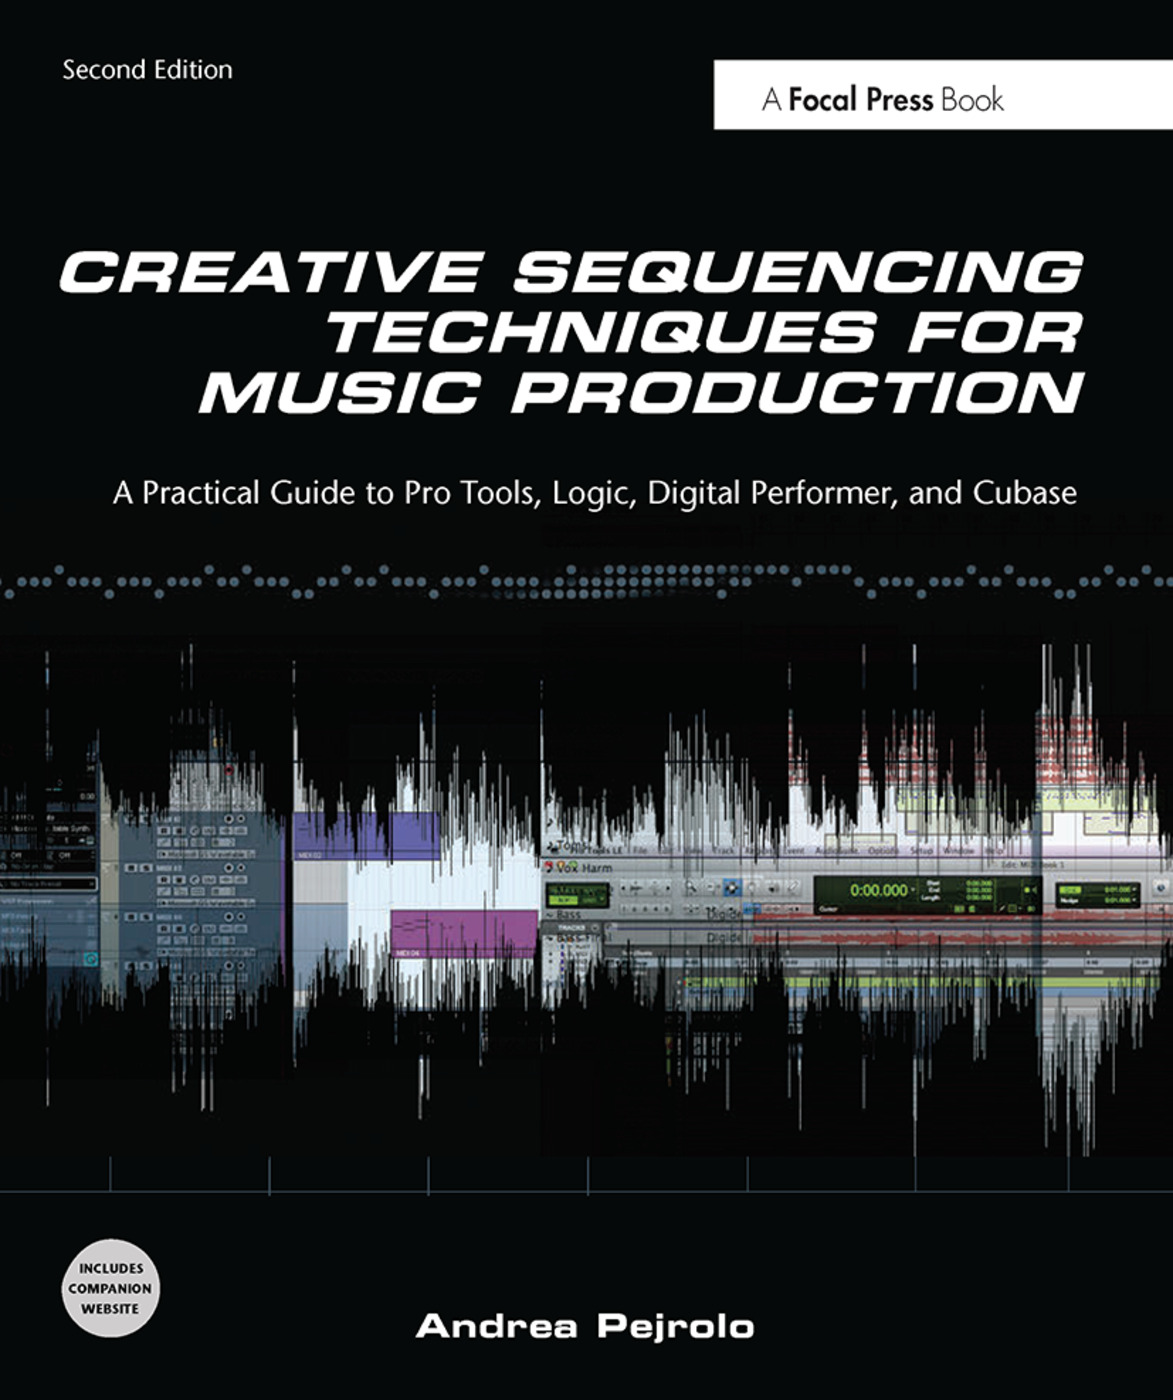 Creative Sequencing Techniques for Music Production: A Practical Guide to Pro Tools, Logic, Digital Performer, and Cubase book cover